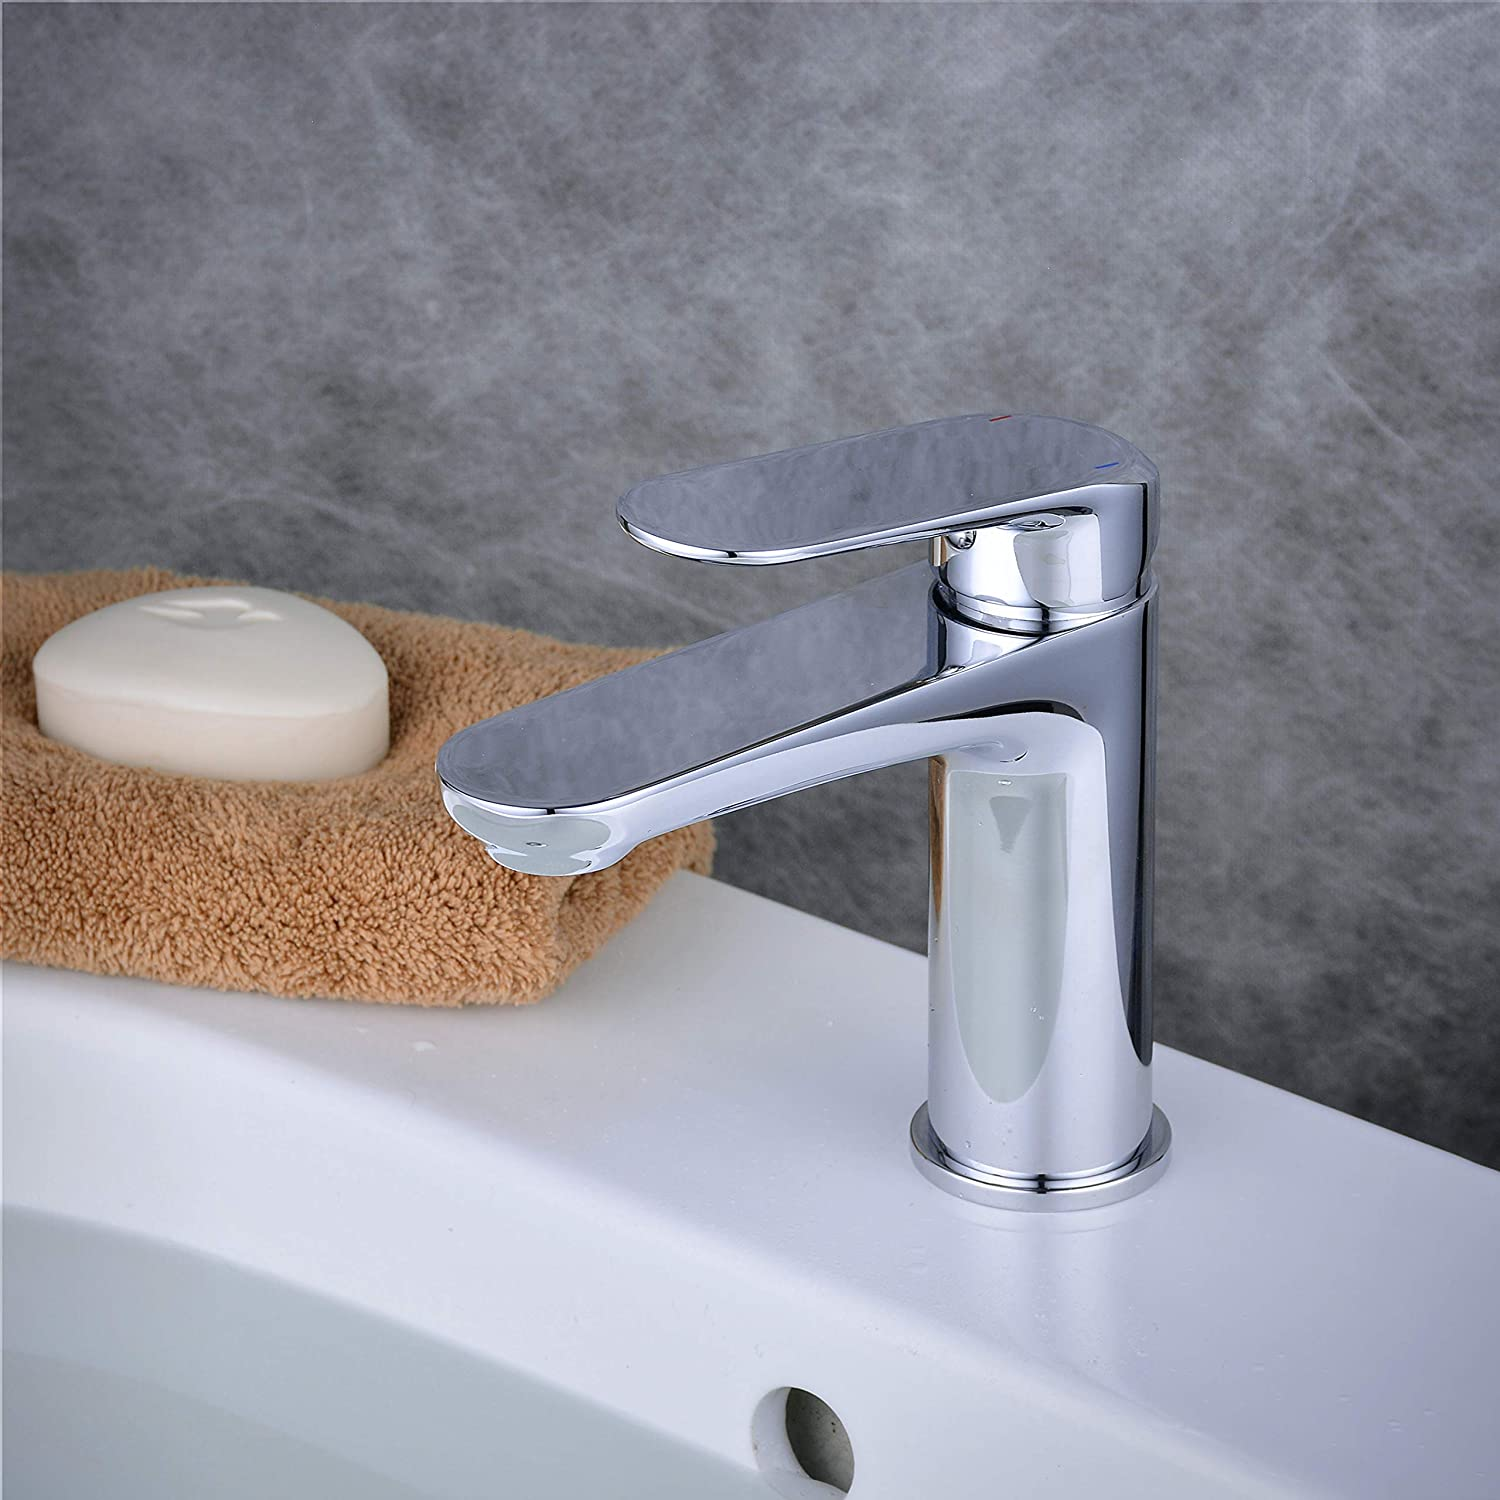 Chrome-1 Bathroom Sink Tap with Single Lever, Hot and Cold Mixer Basin Tap, Polished Chrome Tall Body, Beelee BL6697H